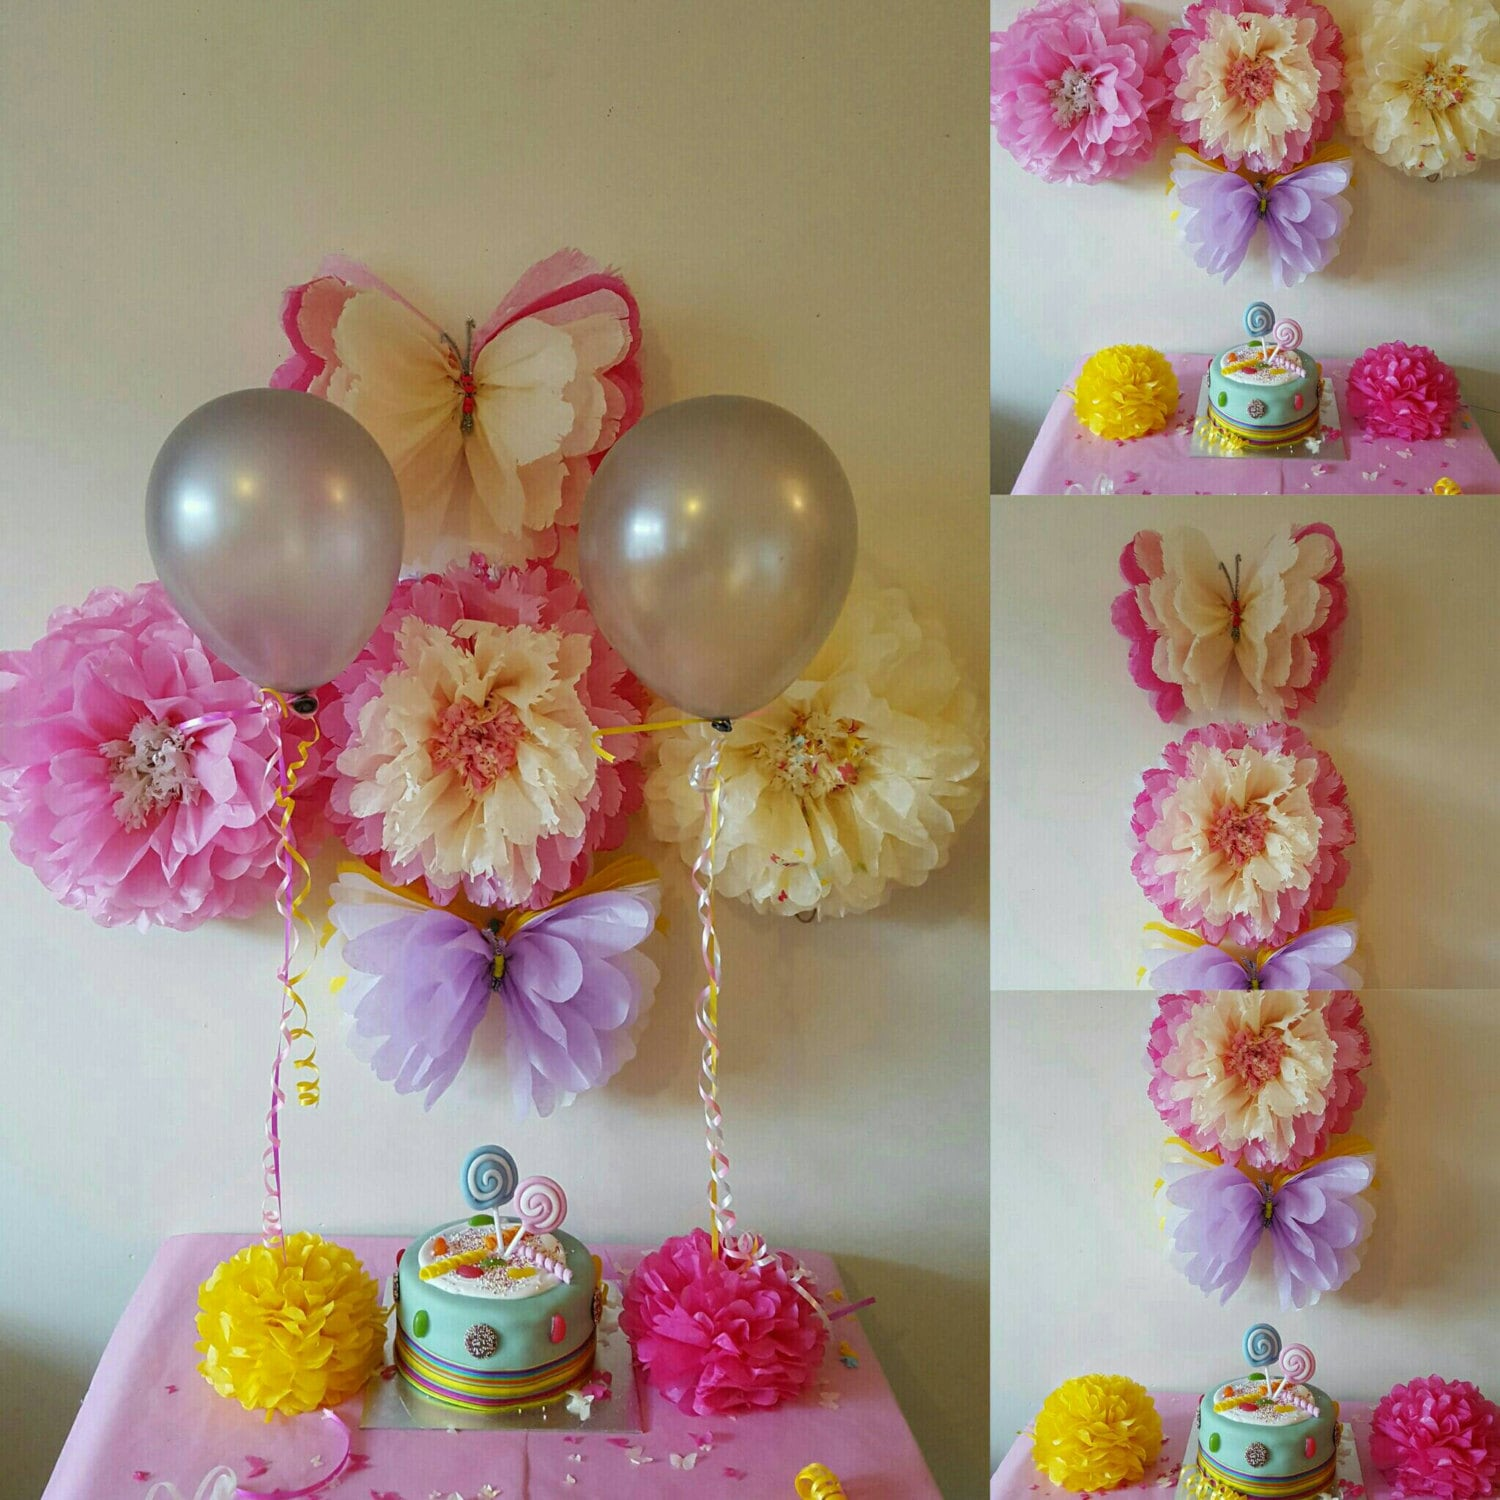 Wedding party baby shower christening balloon weightstable - Decoracion con pompones ...